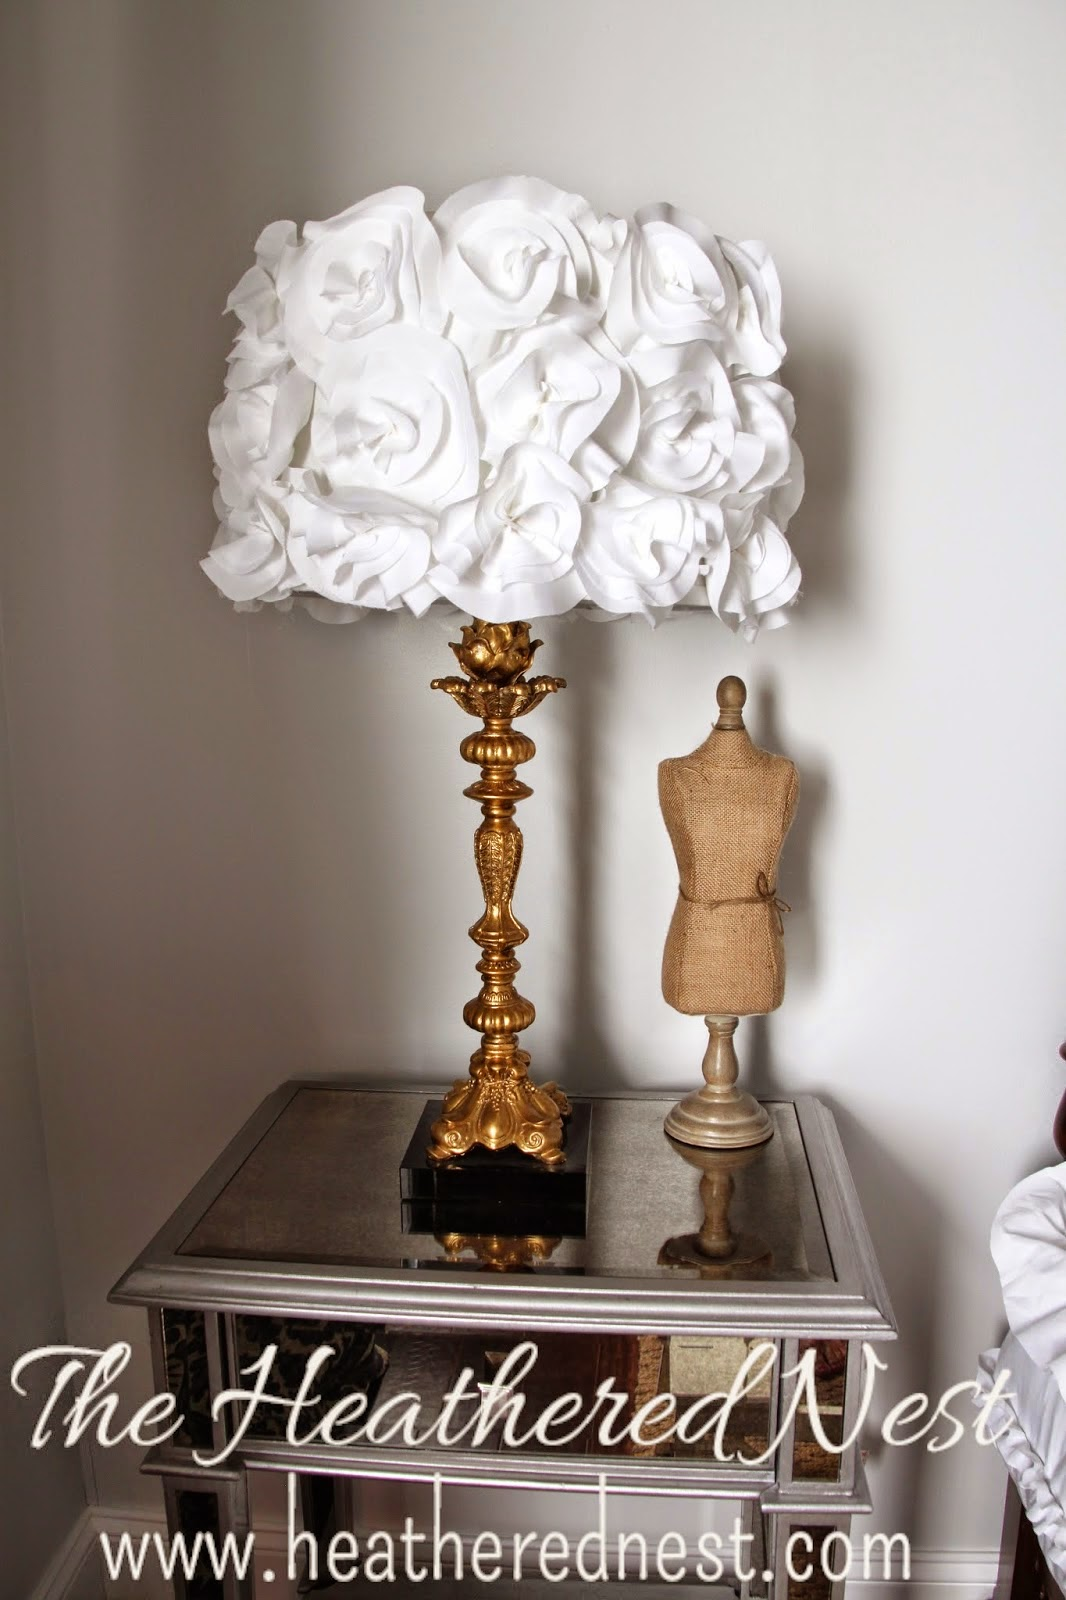 Goodwill tips diy lampshade ideas for Ideas for decorating lamp shades